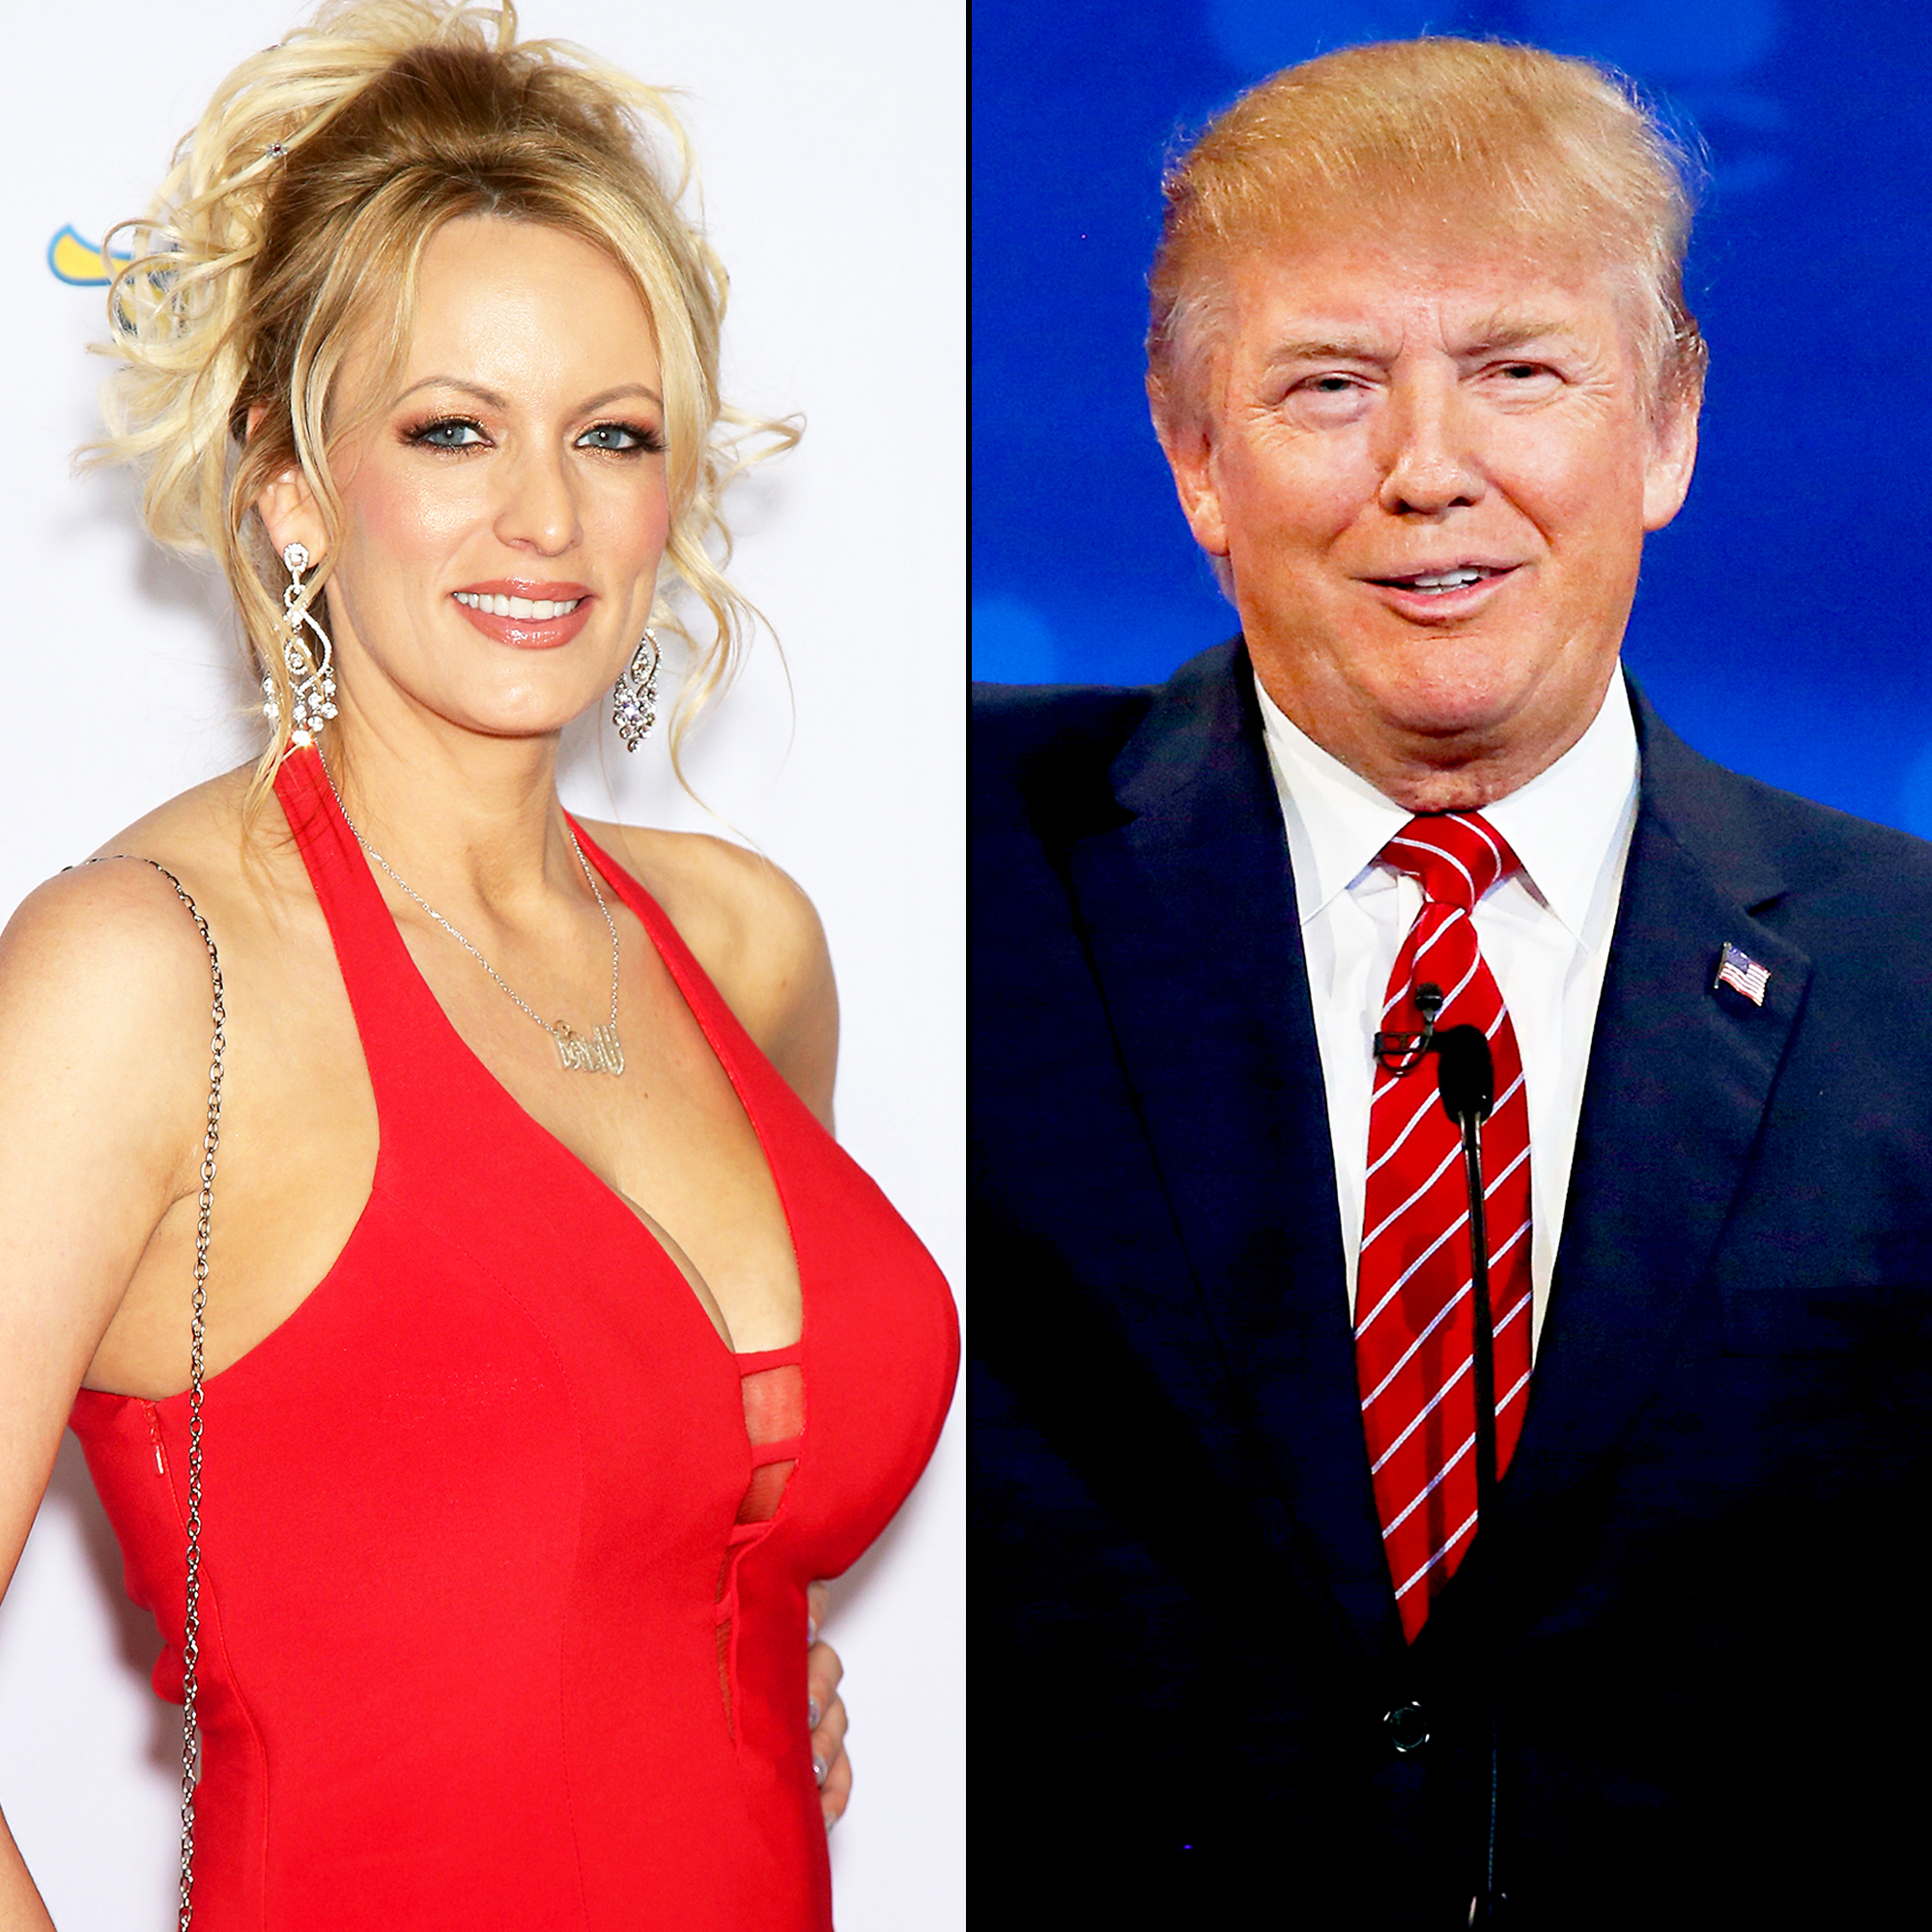 CBS will air Stormy Daniels '60 Minutes' interview